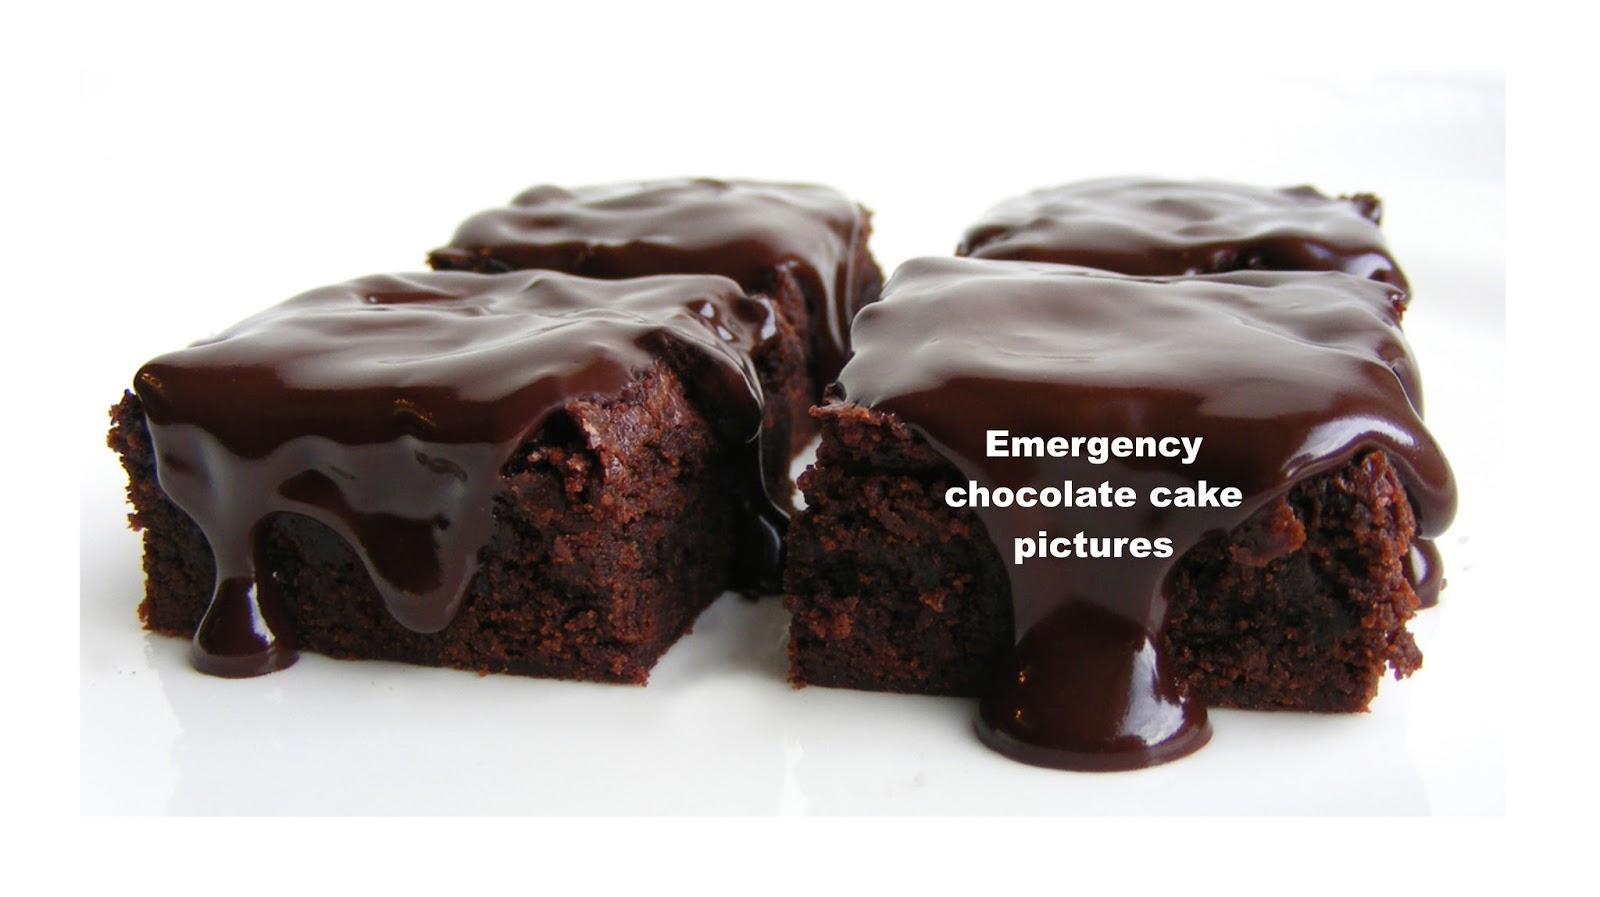 http://alcuinbramerton.blogspot.com/2006/06/emergency-chocolate-cake-pictures.html